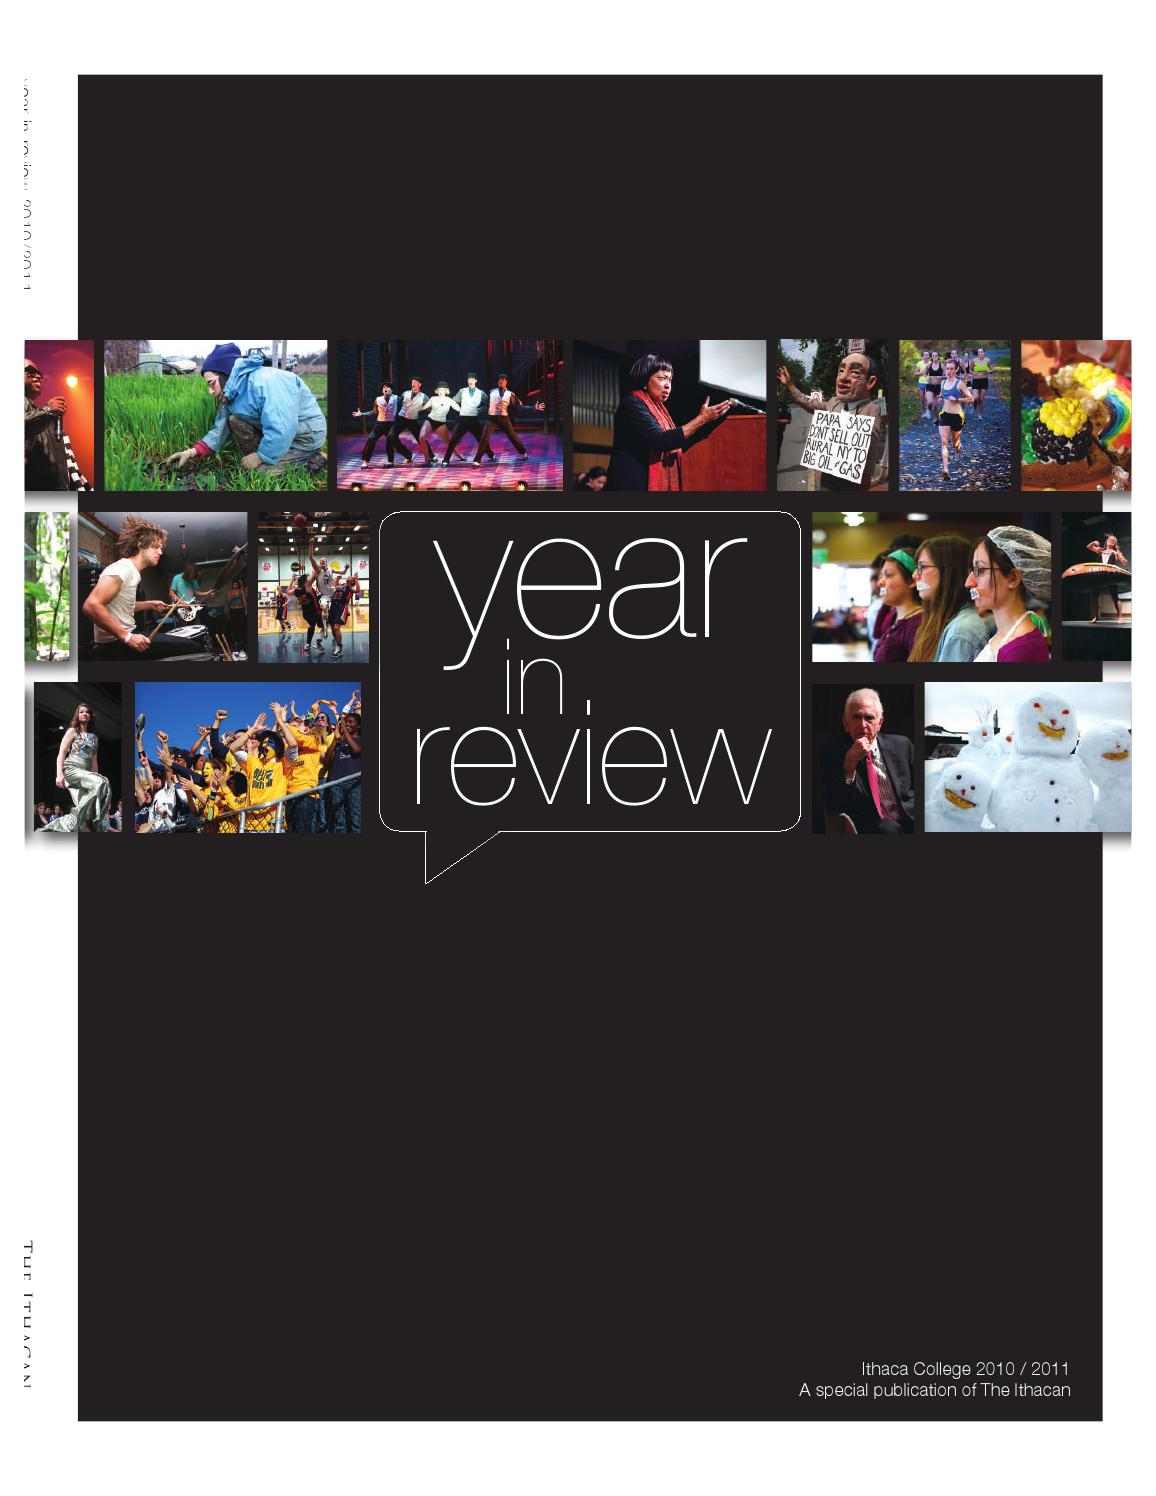 year in review 2010 11 by the ithacan issuu